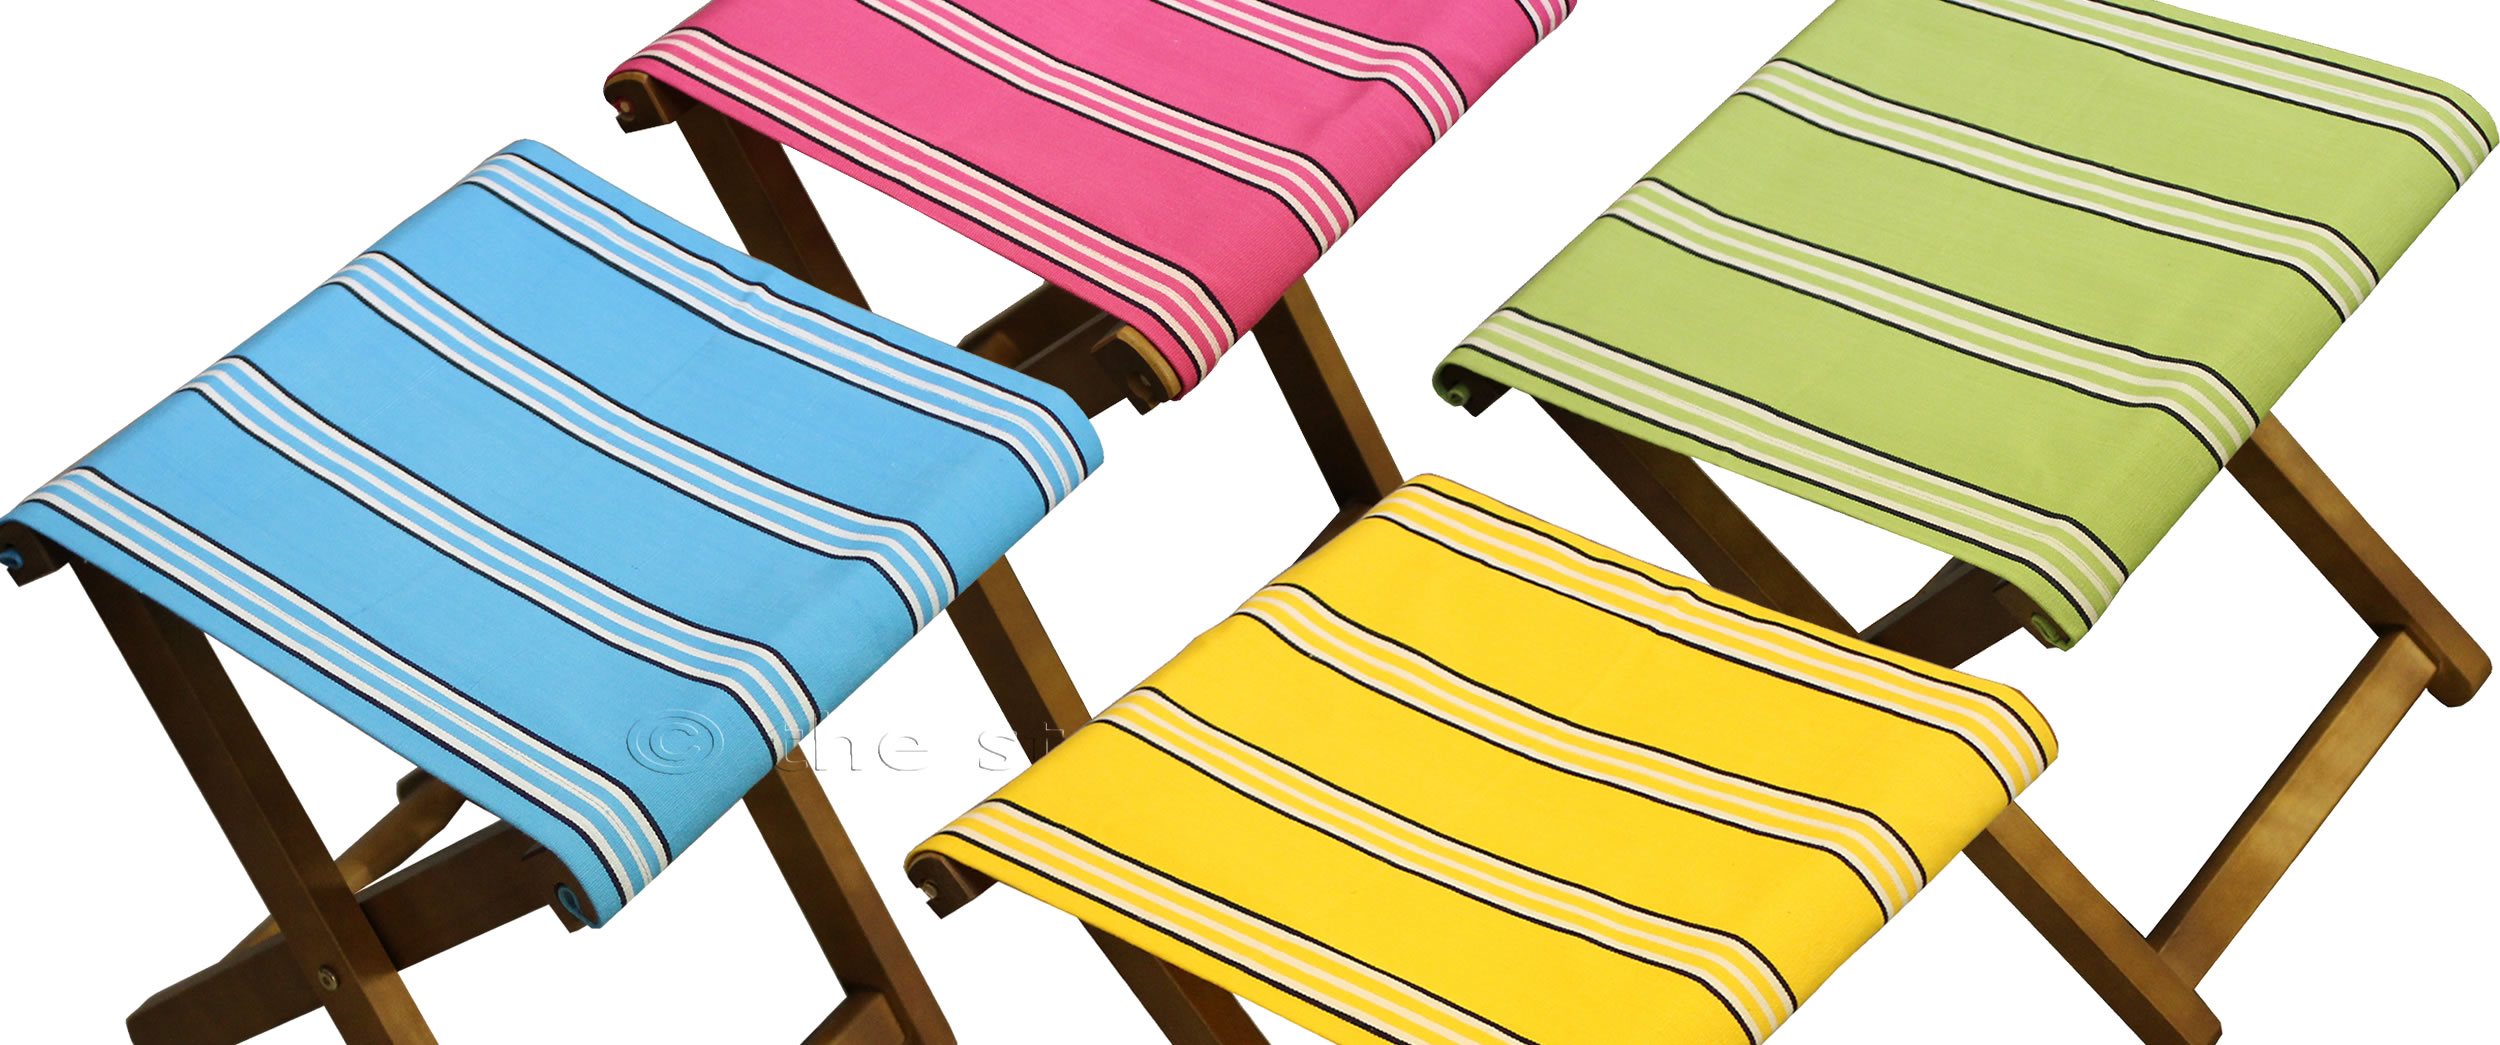 Portable Folding Stools With Striped Seats The Stripes